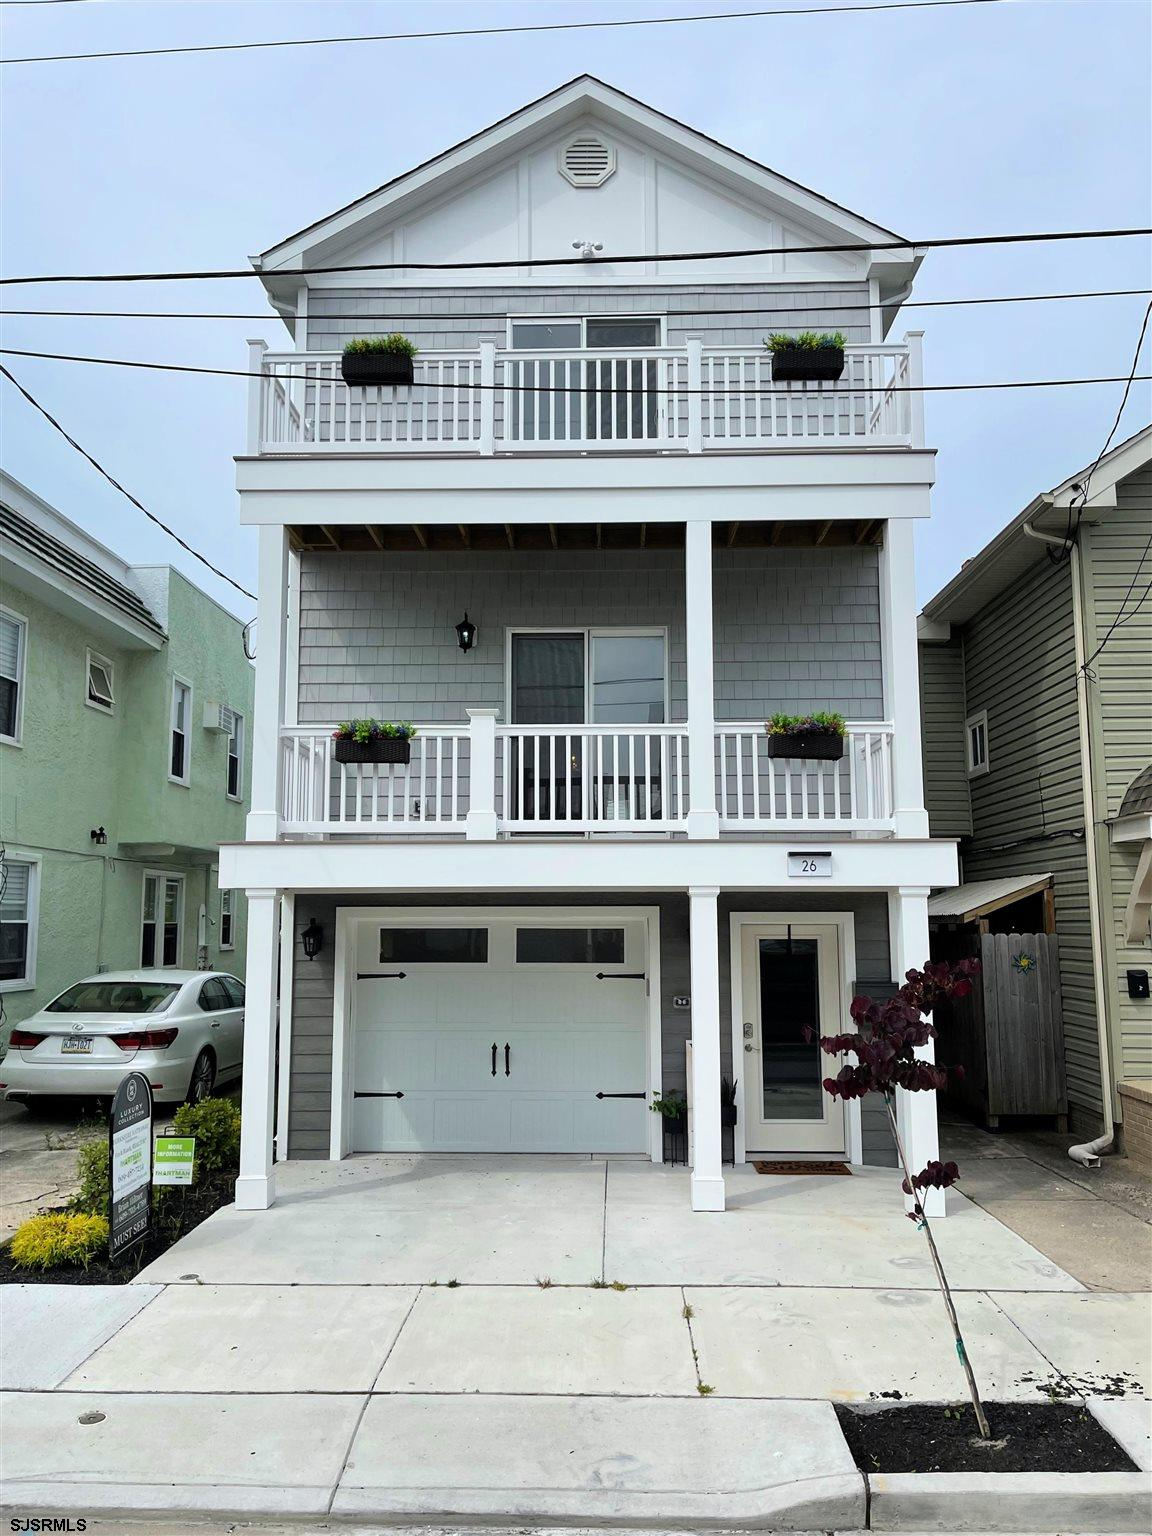 FIRST BLOCK NORTH NEW CONSTRUCTION!! Situated just two blocks from Margate with 4 bedrooms, 4 full b